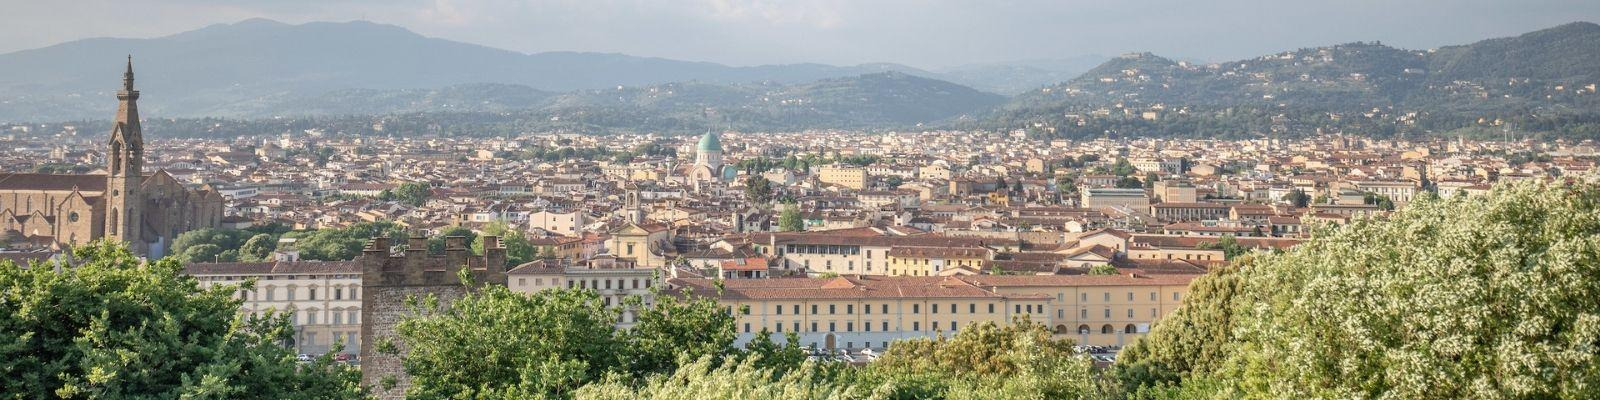 Visiting Florence for the First Time? Here's What to See and Do